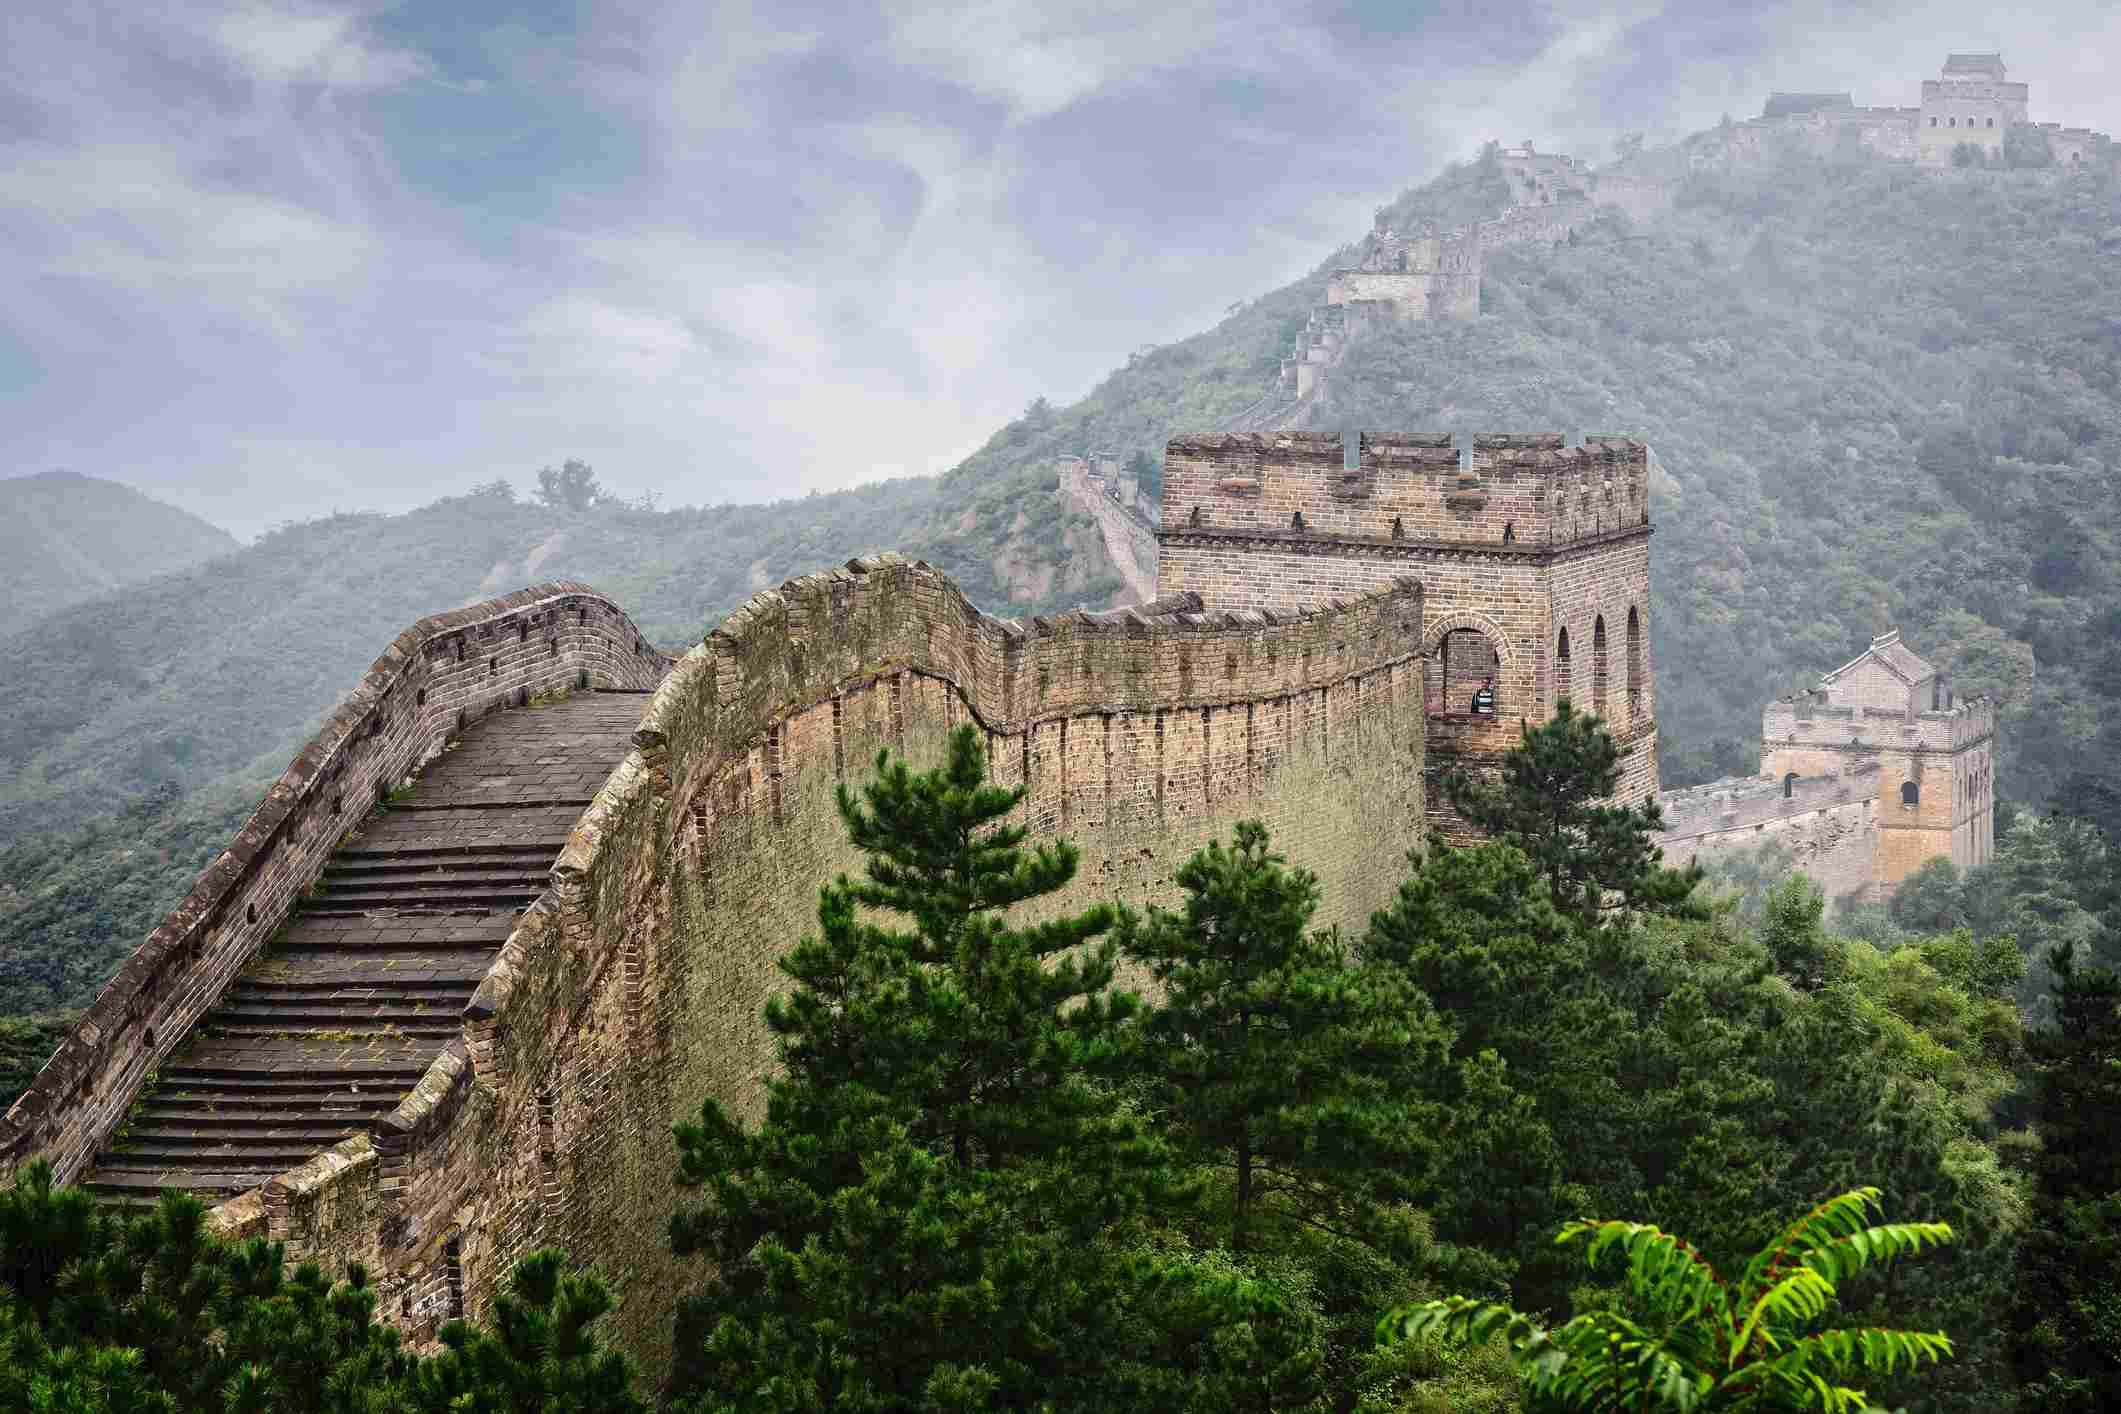 The Great Wall of China in Beijing